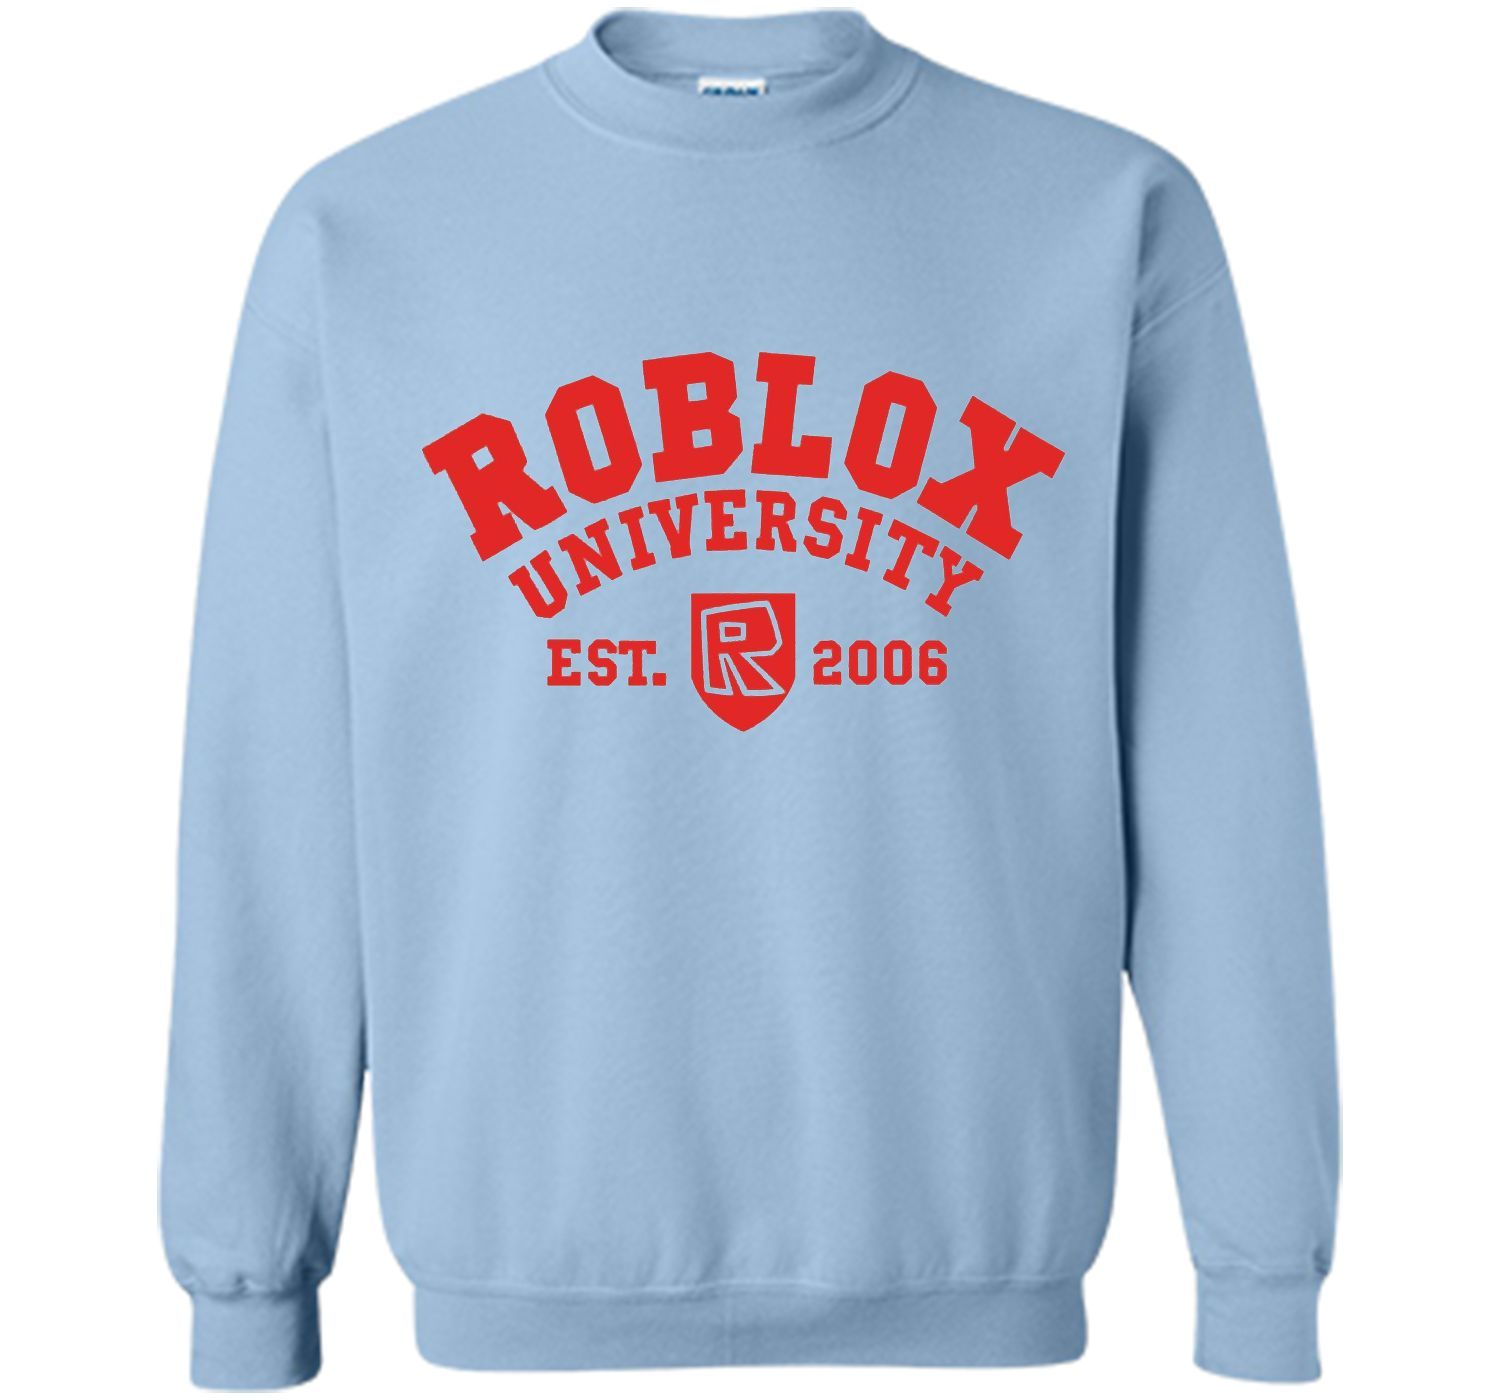 Roblox University T Shirt Shirt Cool Shirts Bear T Shirt Tee Shirt Print